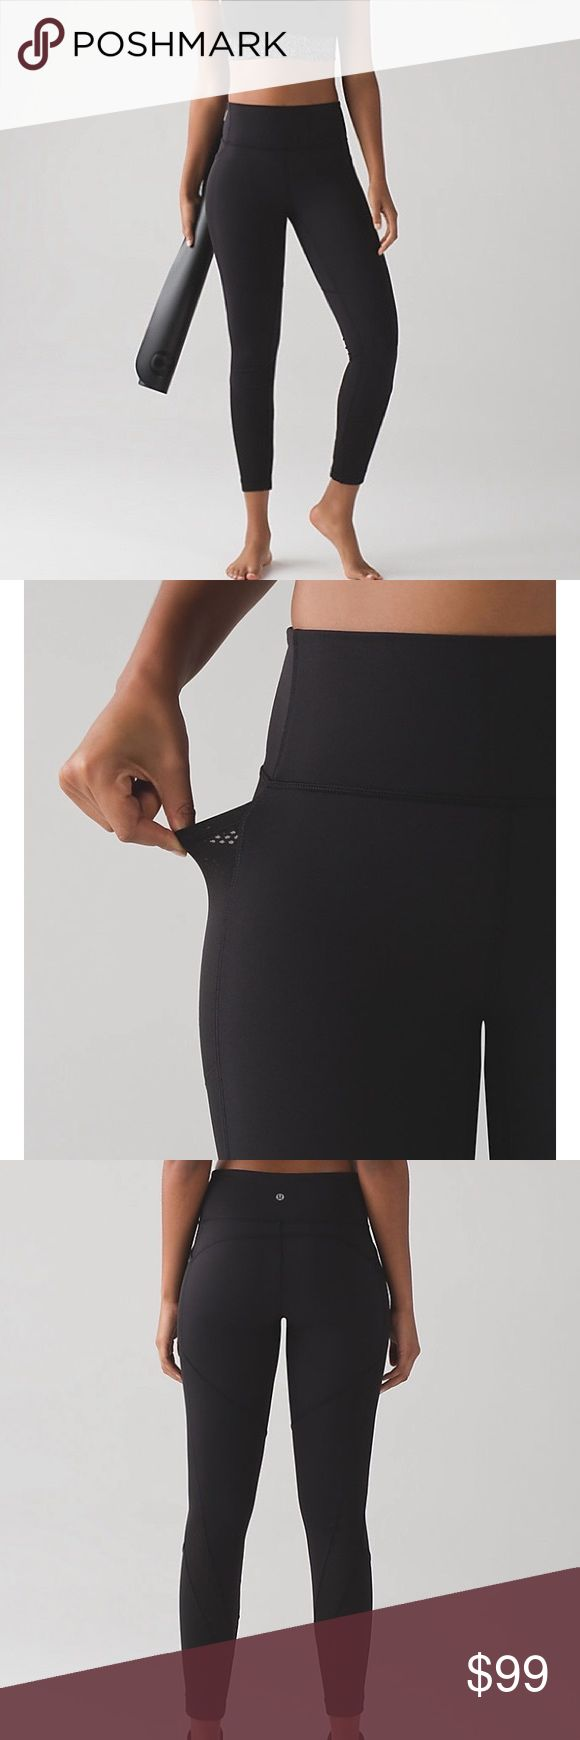 NWT Lululemon Fit Physique Tights | Size 6 BRAND NEW WITH TAGS SIZE 6 COLOR: black  These sweat-wicking tights with added support have Mesh panels for hybrid workouts. Full-On Luon® fabric is four-way stretch and soft against your skin.   A tight-knit version of our Luon® fabric, sweat-wicking Full-On® Luon is four-way stretch with a cottony-soft feel - incredible support and coverage - sweat-wicking - four-way stretch - cottony-soft handfeel - naturally breathable  Regular Price: $118…